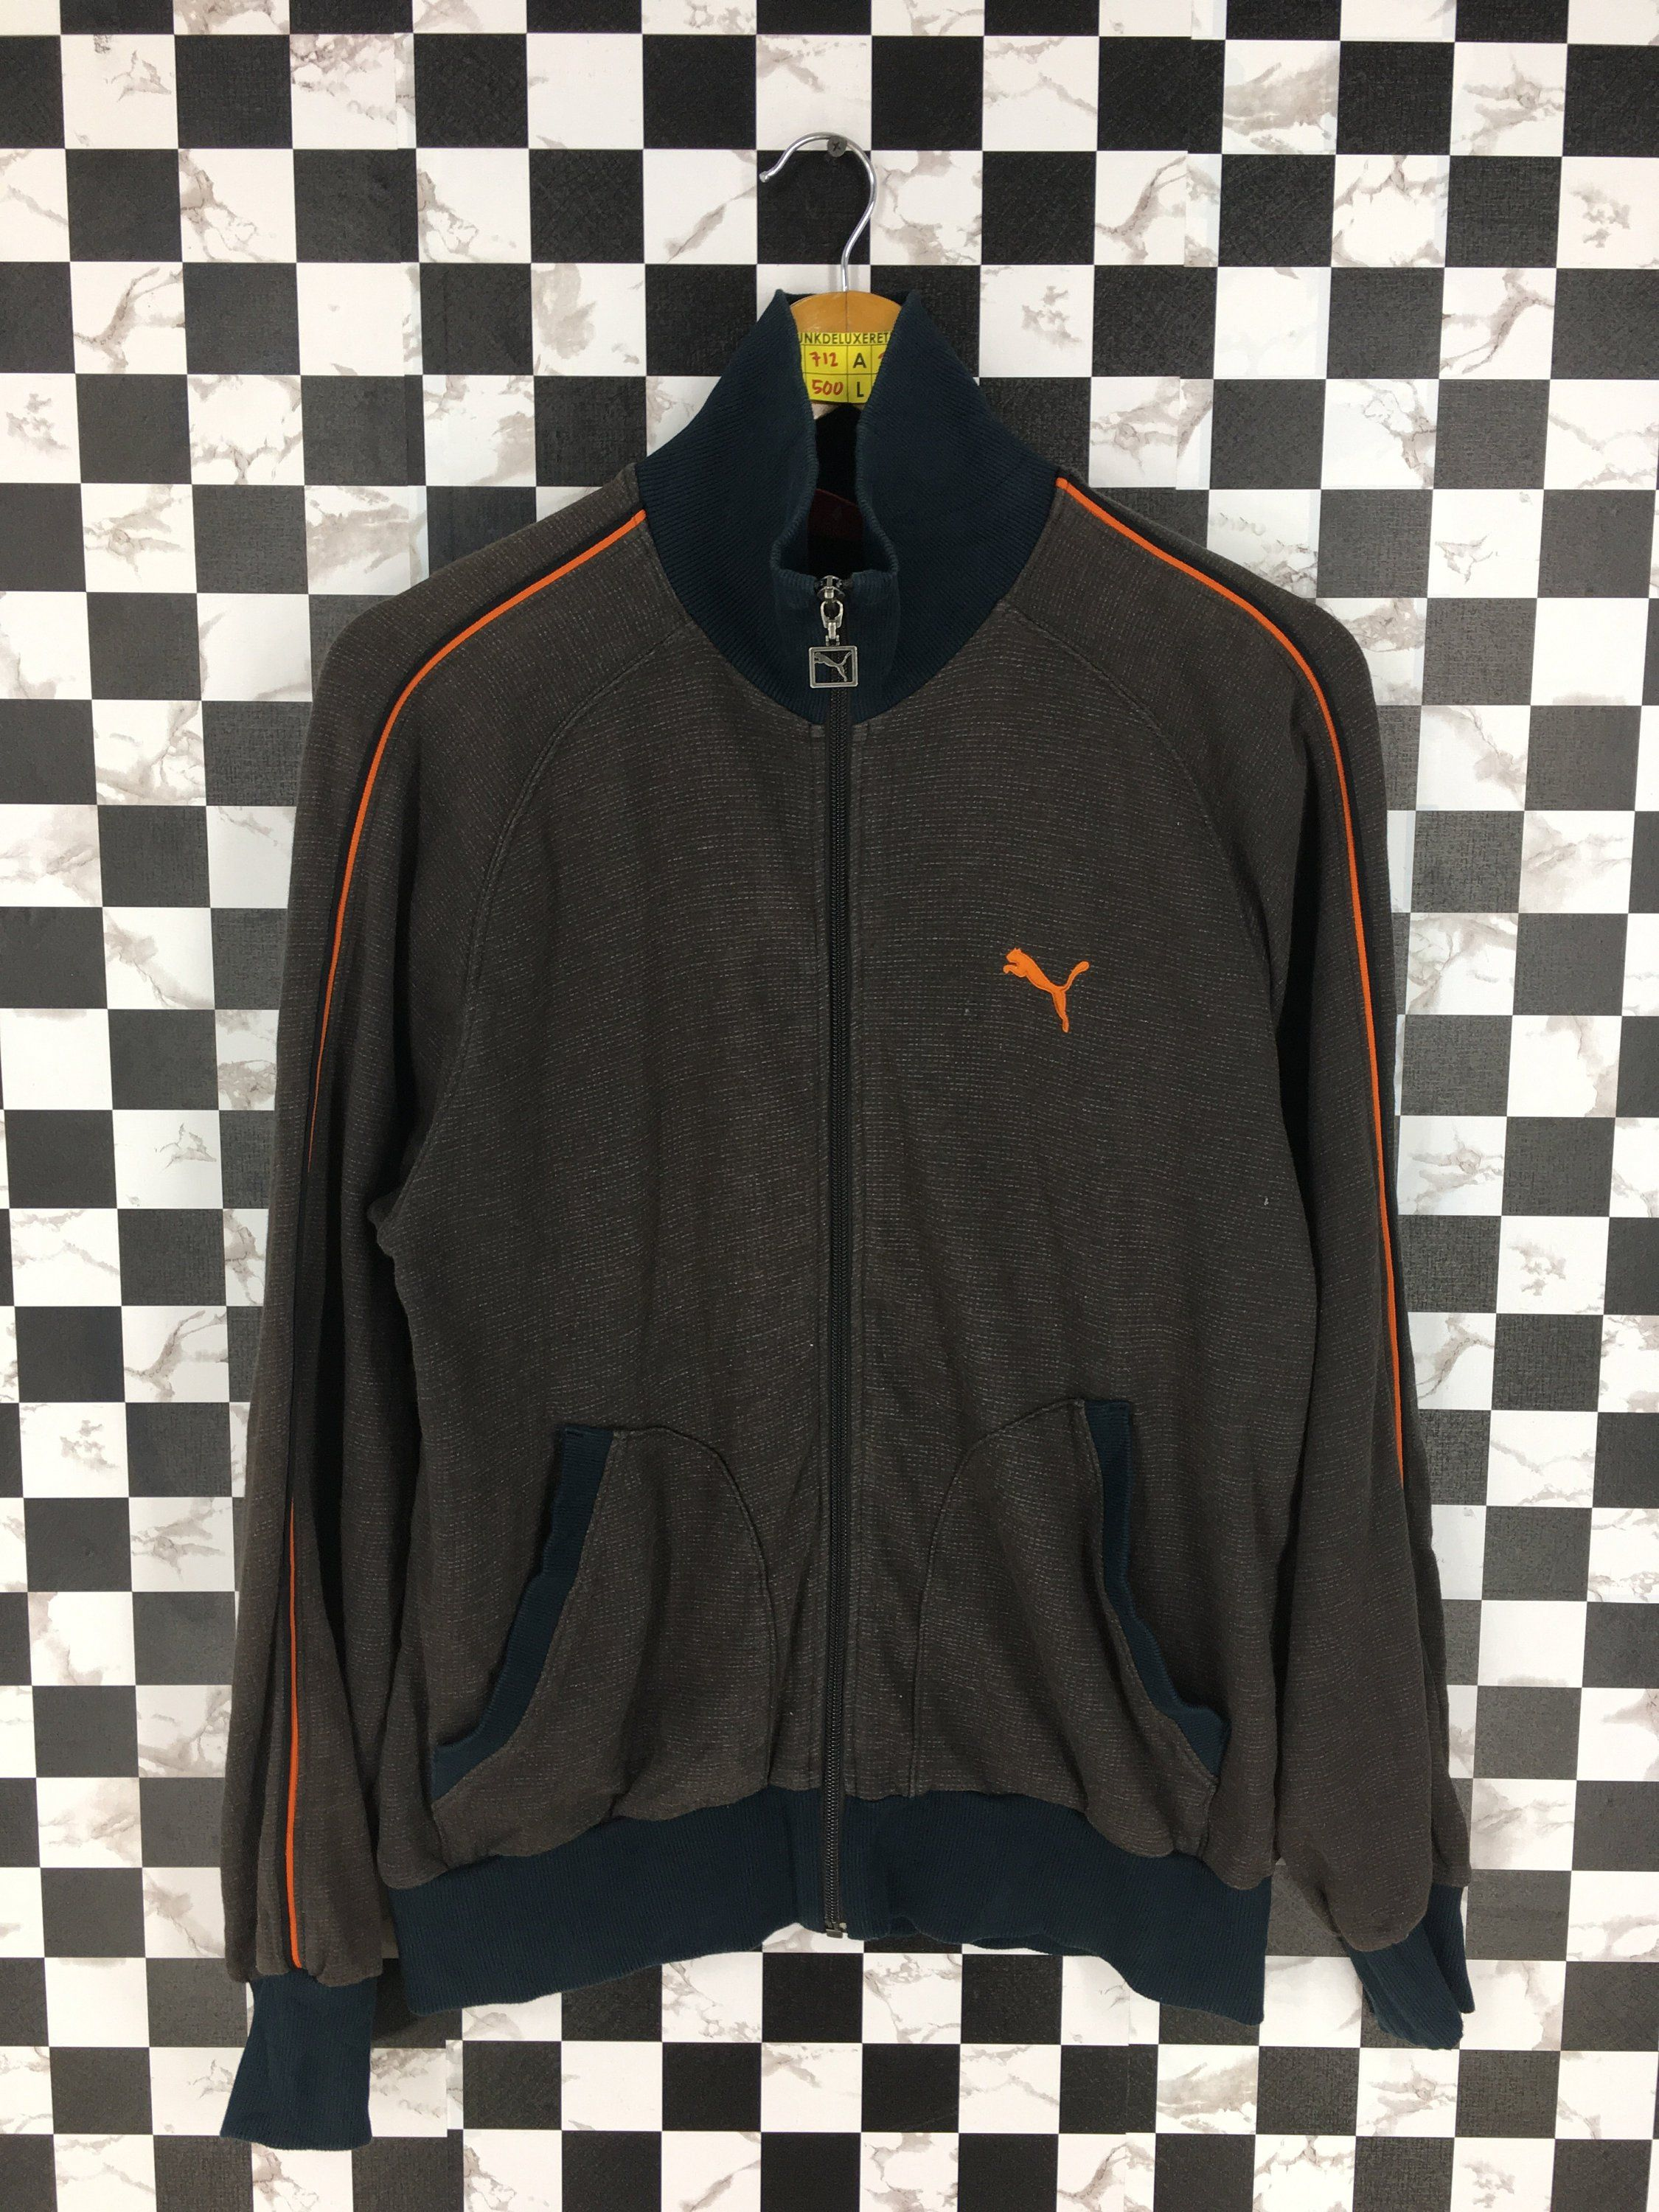 6daba8cb29f50 Vintage 90's PUMA Sweater Jacket Women Large Puma Cougar Spell Out ...